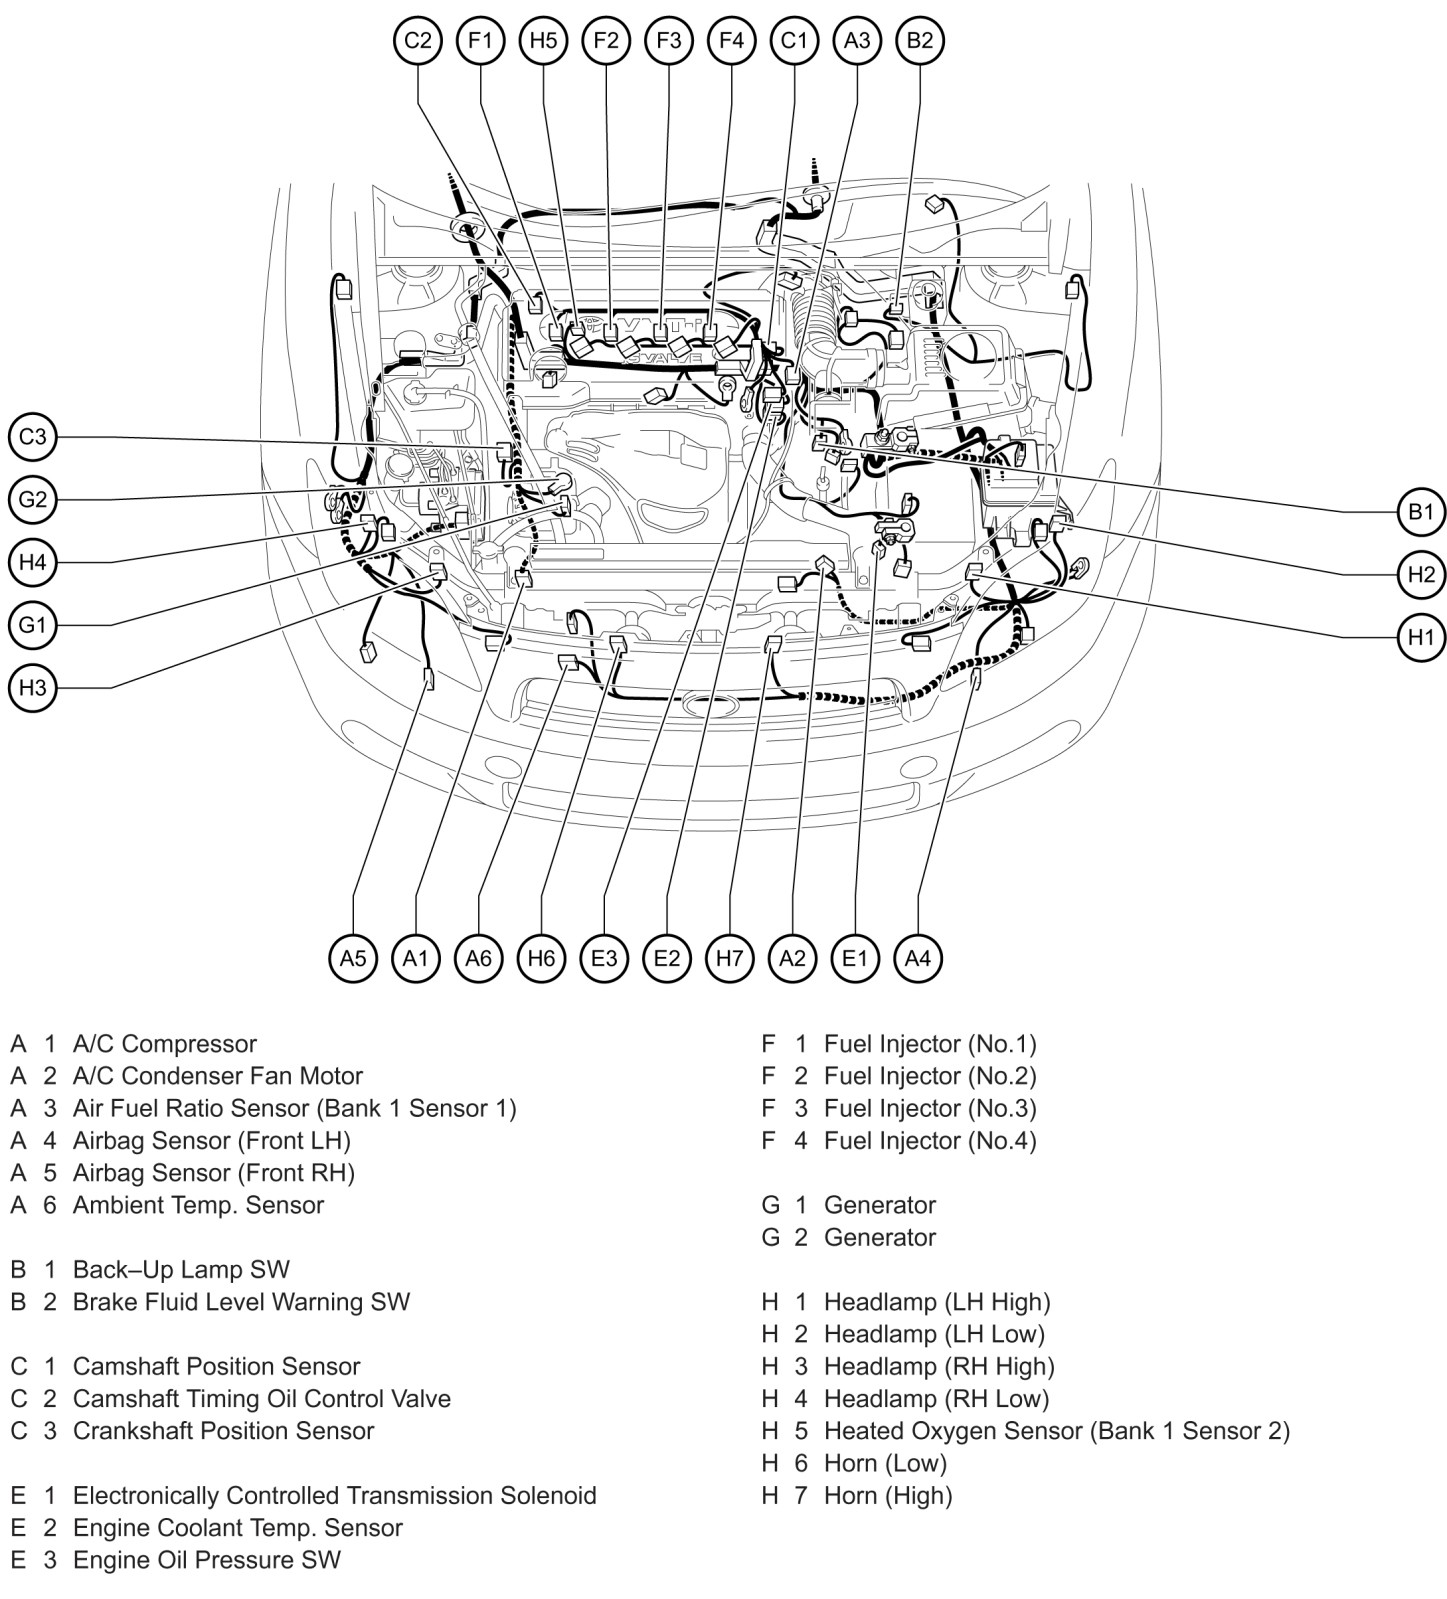 2005 scion tc engine diagram introduction to electrical wiring rh jillkamil scion tc alternator wiring diagram turn signal wiring diagram 2006 scion tc